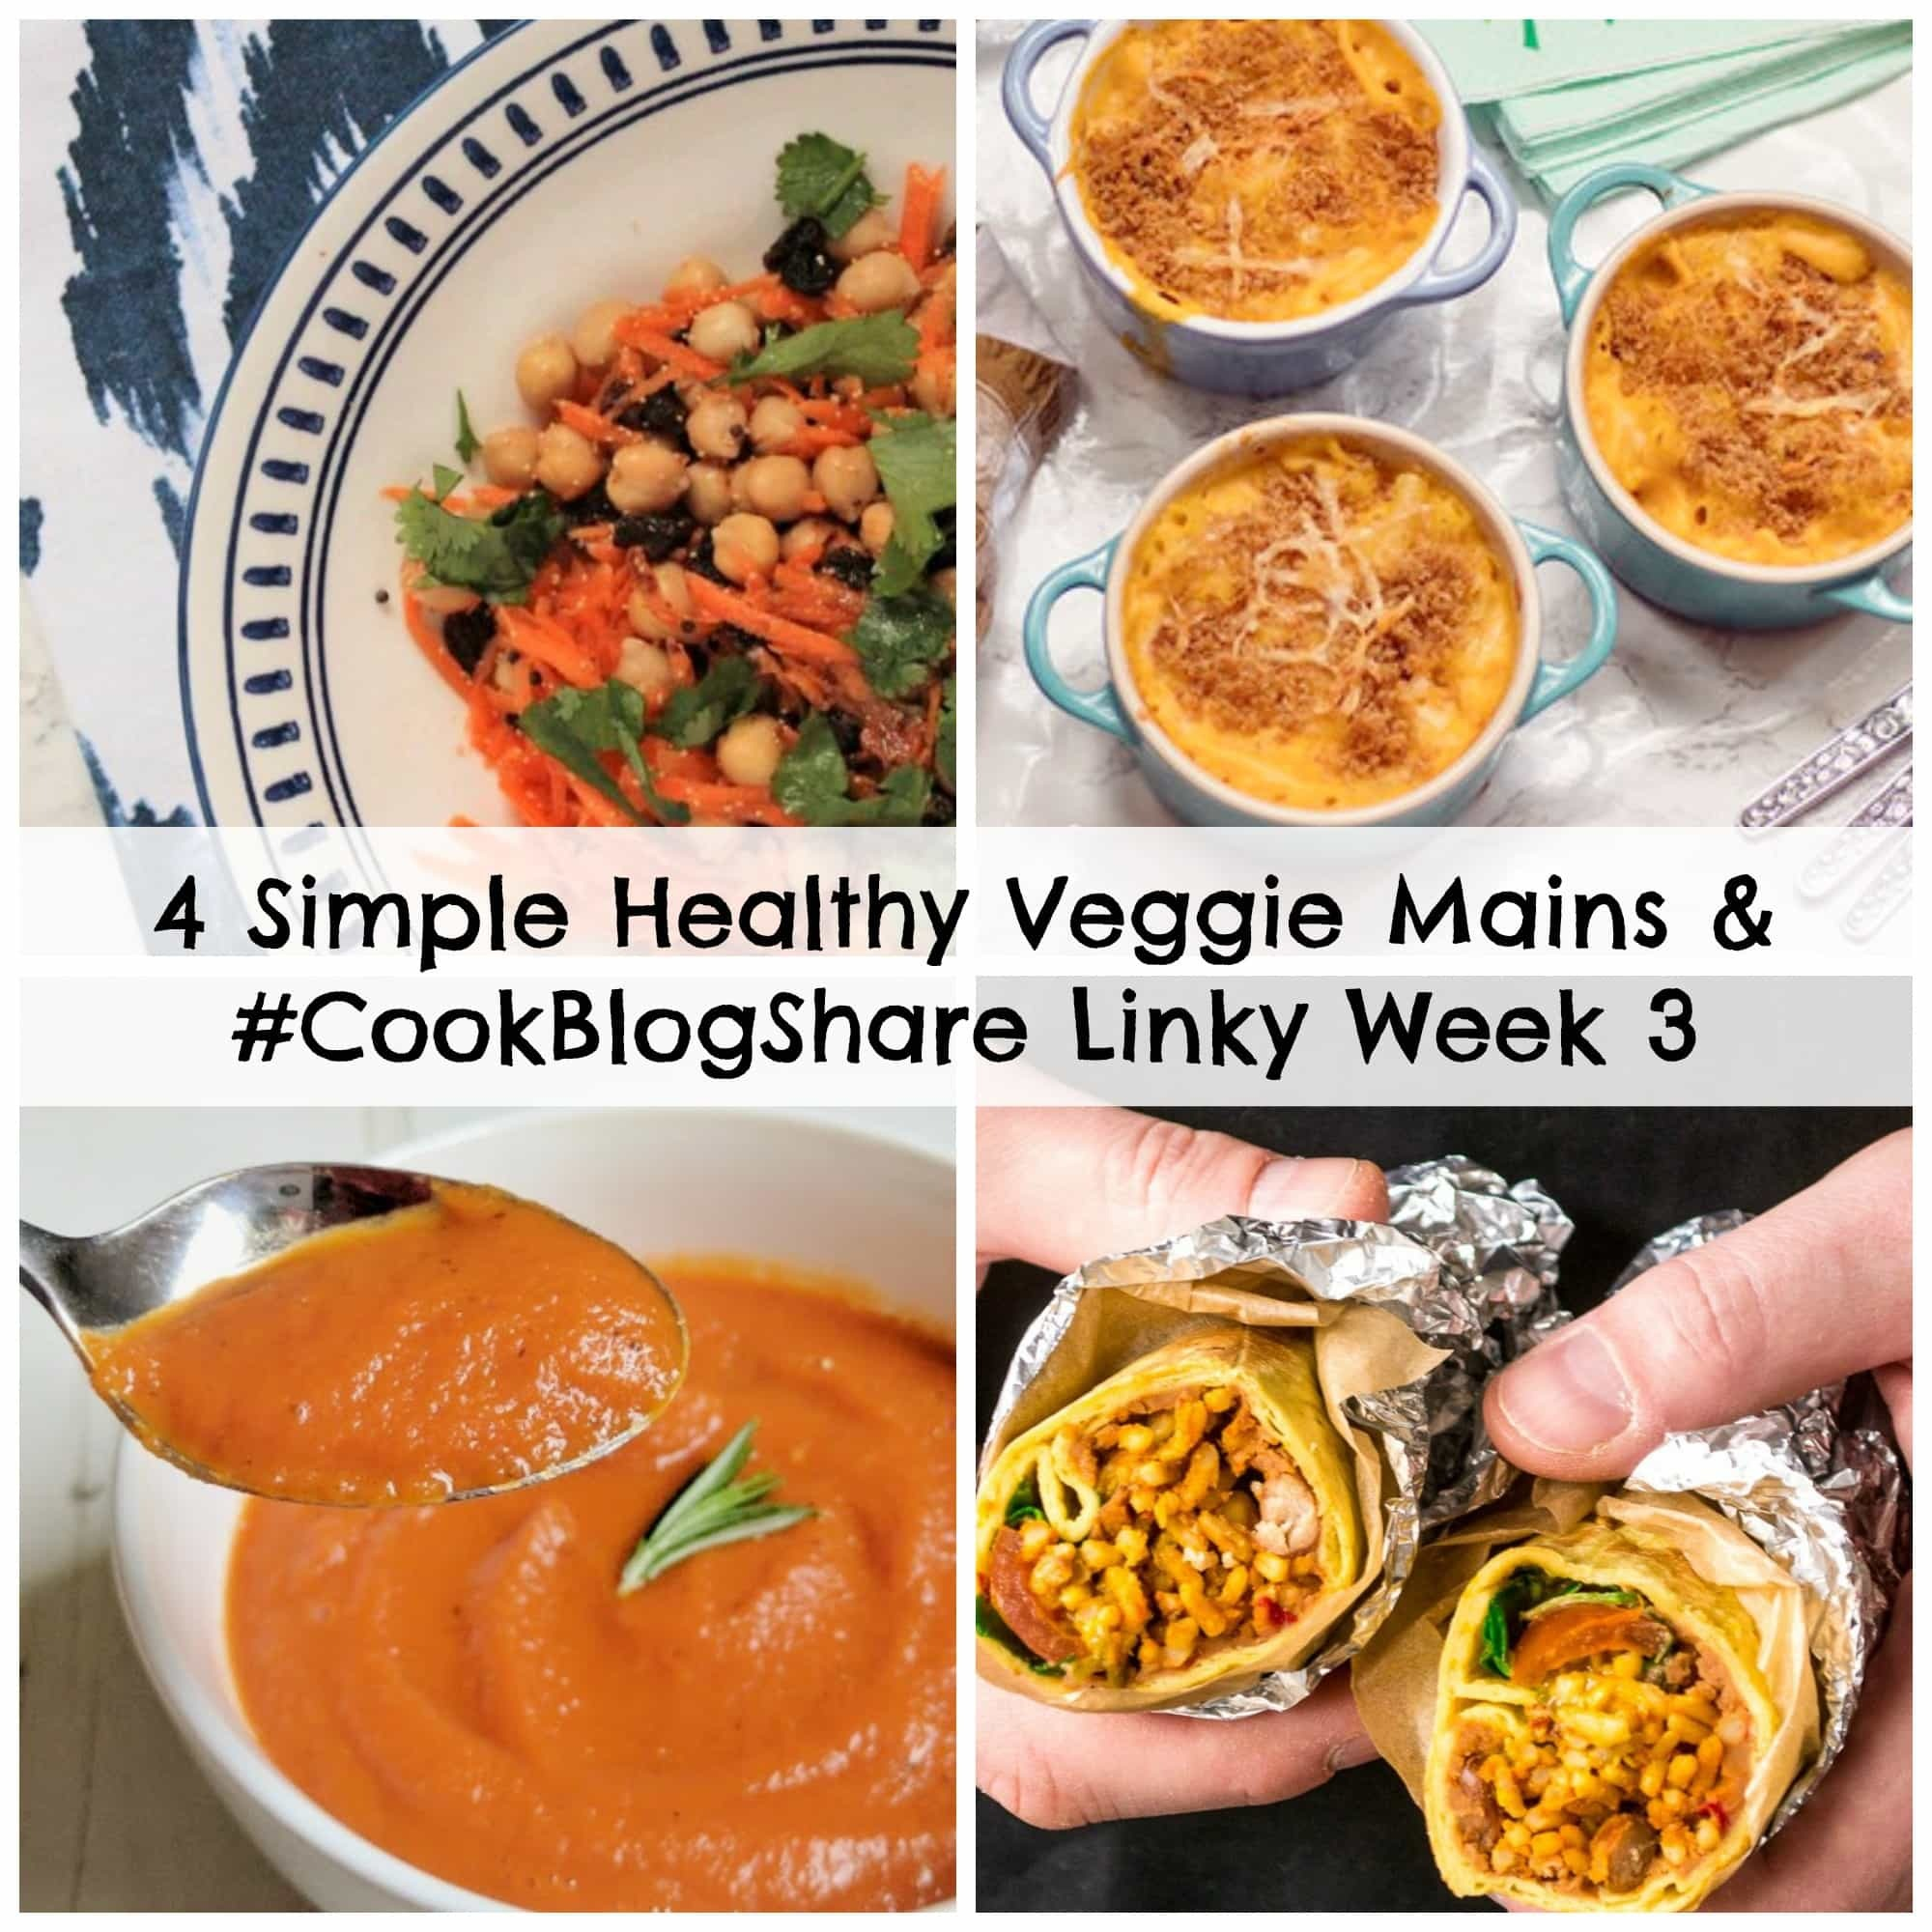 4 Simple Healthy Veggie Mains and #CookBlogShare Linky Week 3